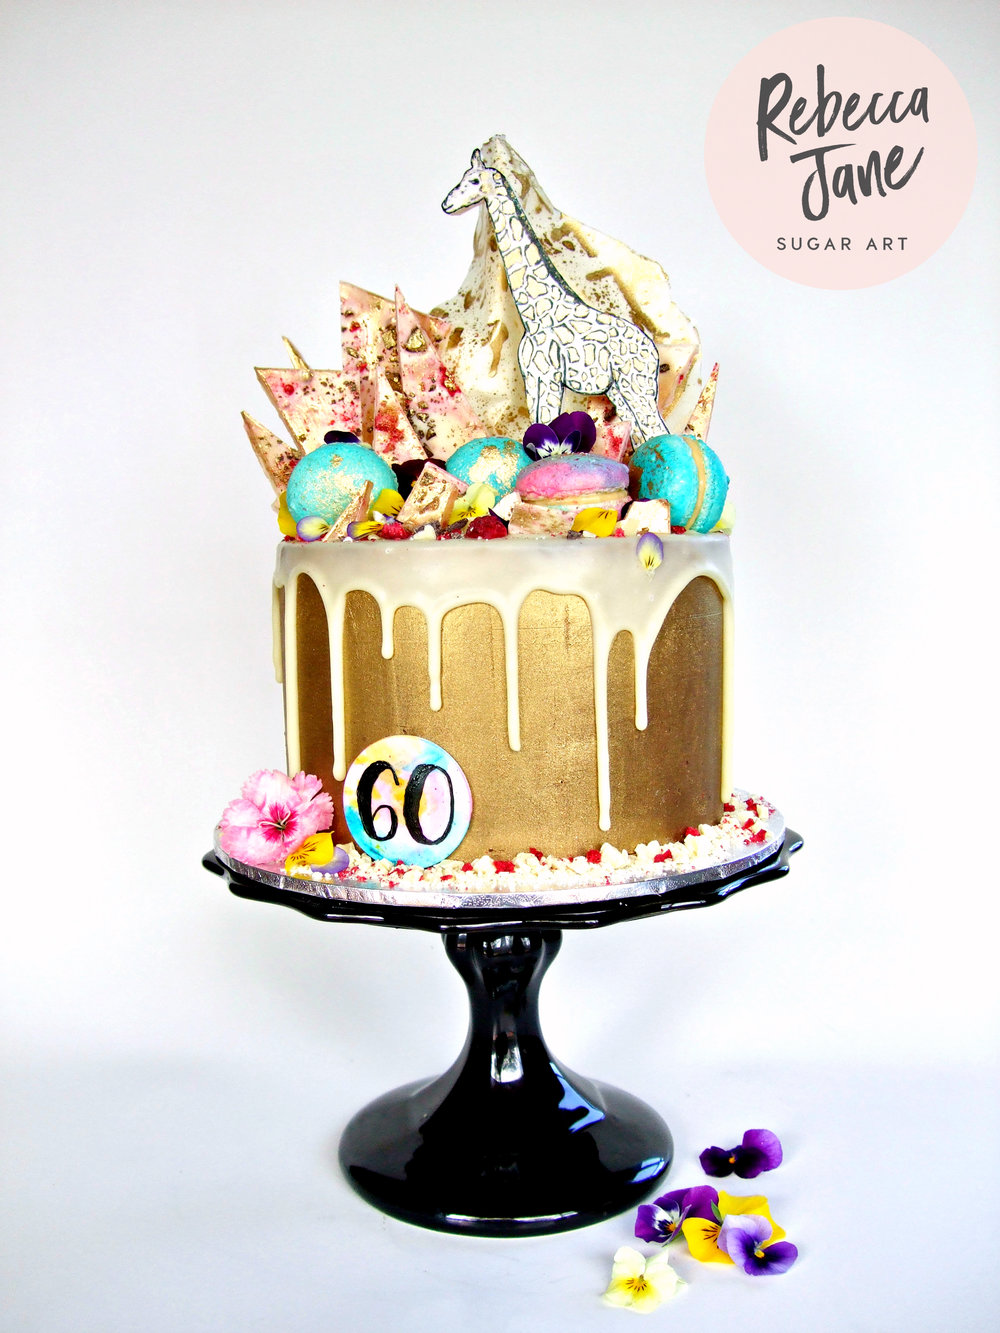 Rebecca Jane Sugar Art - Gold ganache drip cake with handpainted details